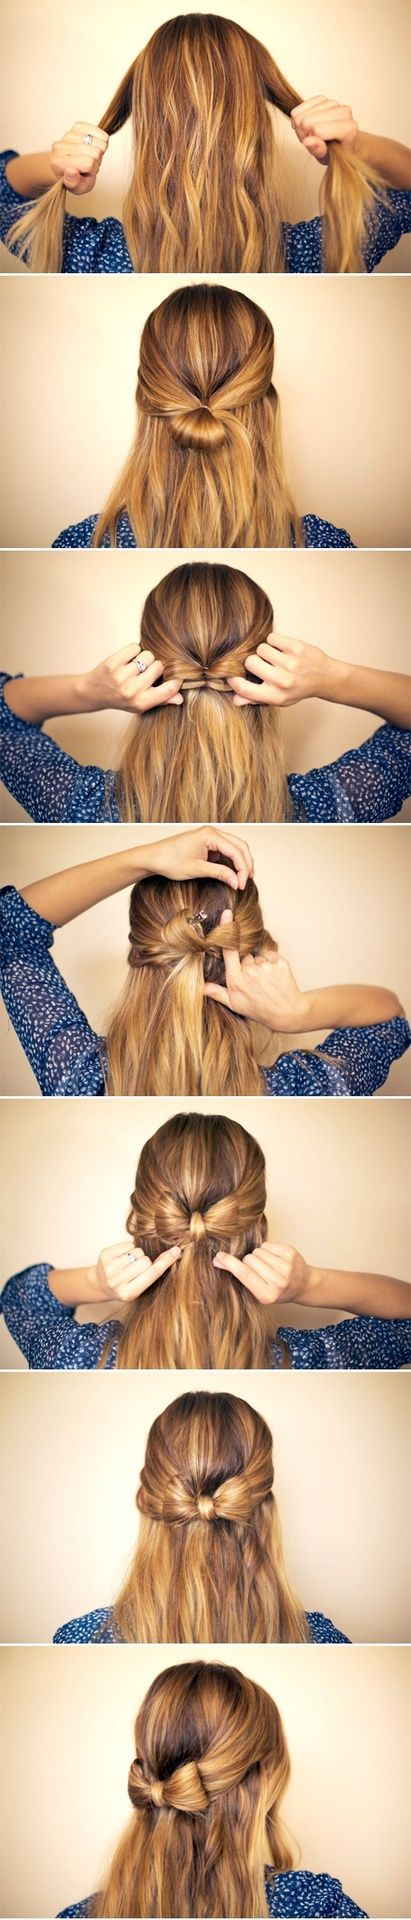 DIY hair inspiration. Love the blonde hair bow you can create yourself. Easy to do it yourself with your long hair. Cute formal idea. Perfect for brides and bridesmaids. Would look gorgeous with a stunning strapless or backless prom runway dress.